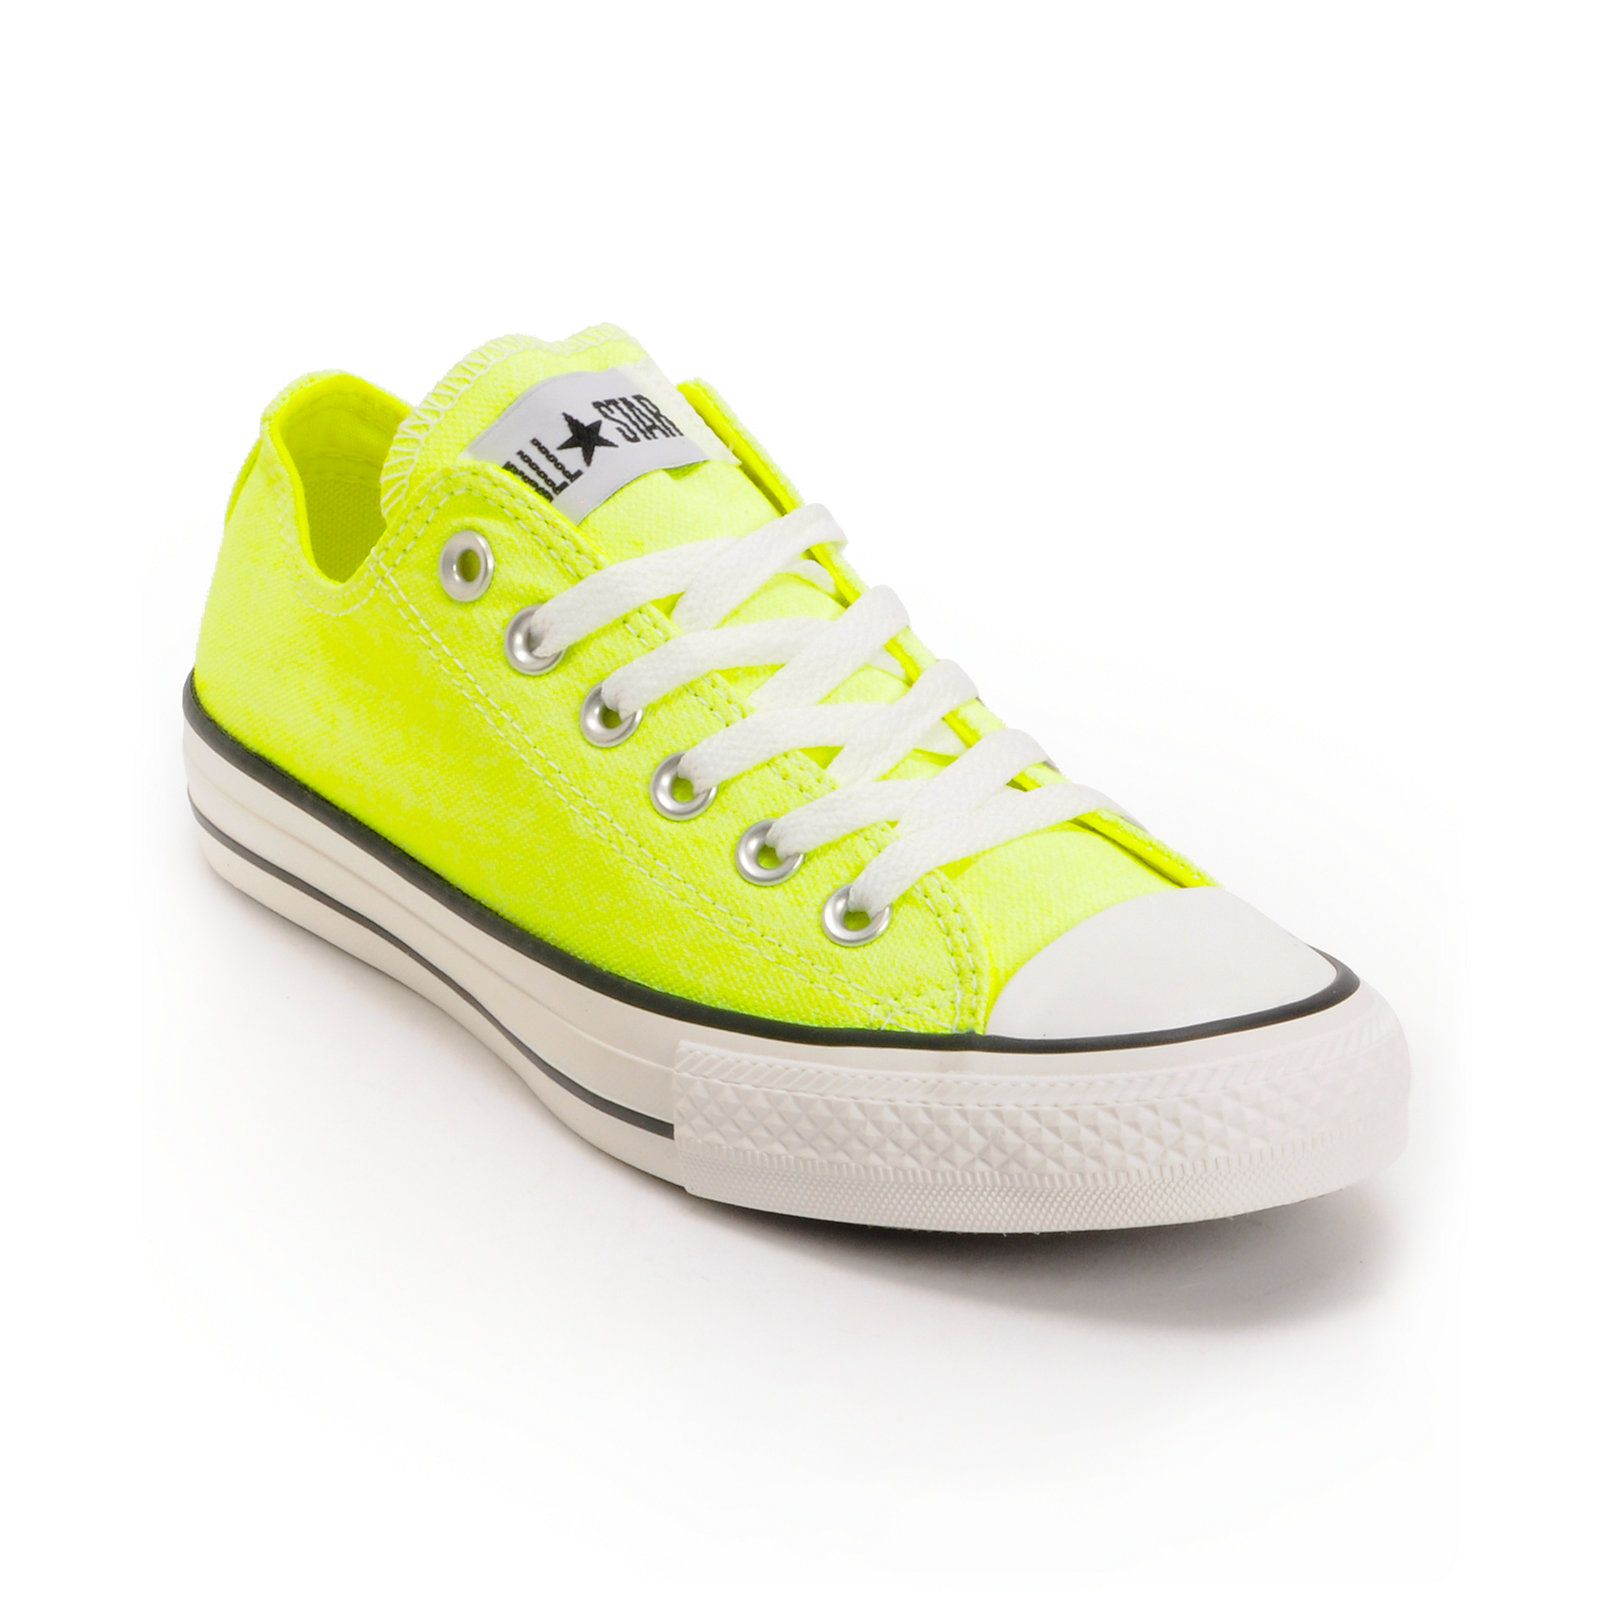 f8267ce6a8a4a8 Converse Chuck Taylor All Star Washed Neon Yellow Shoe at Zumiez ...